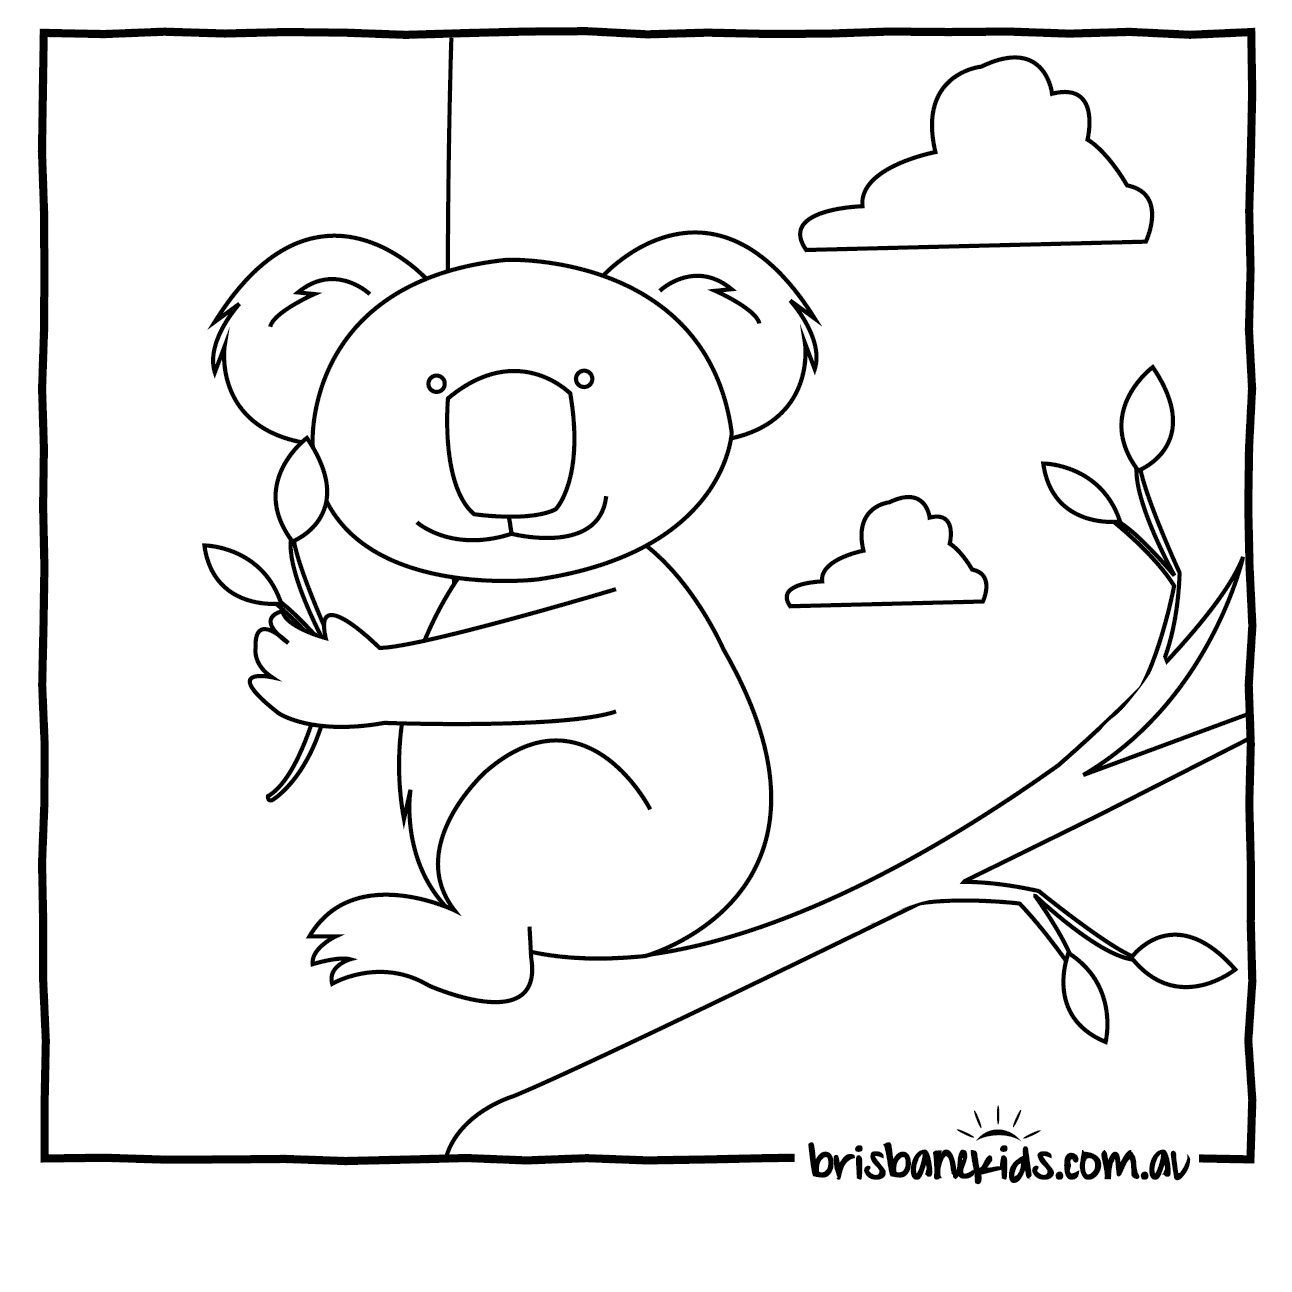 animai coloring pages - photo#18